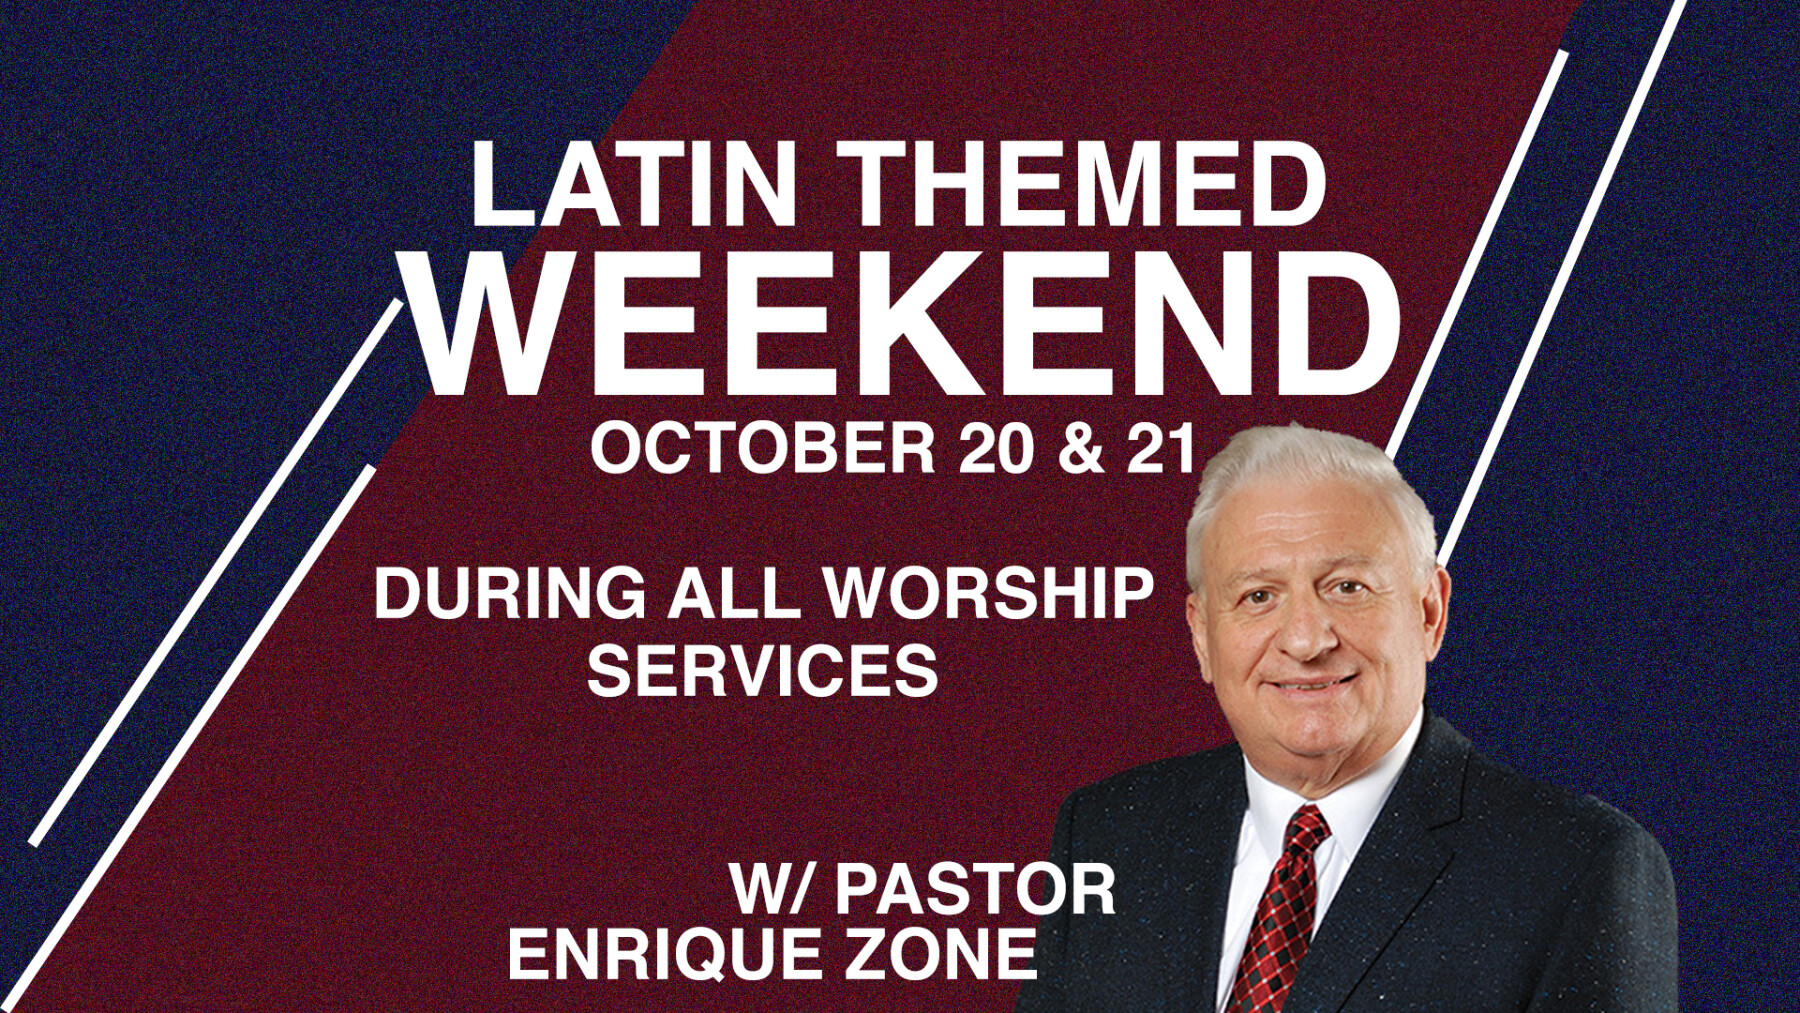 Latin Themed Weekend